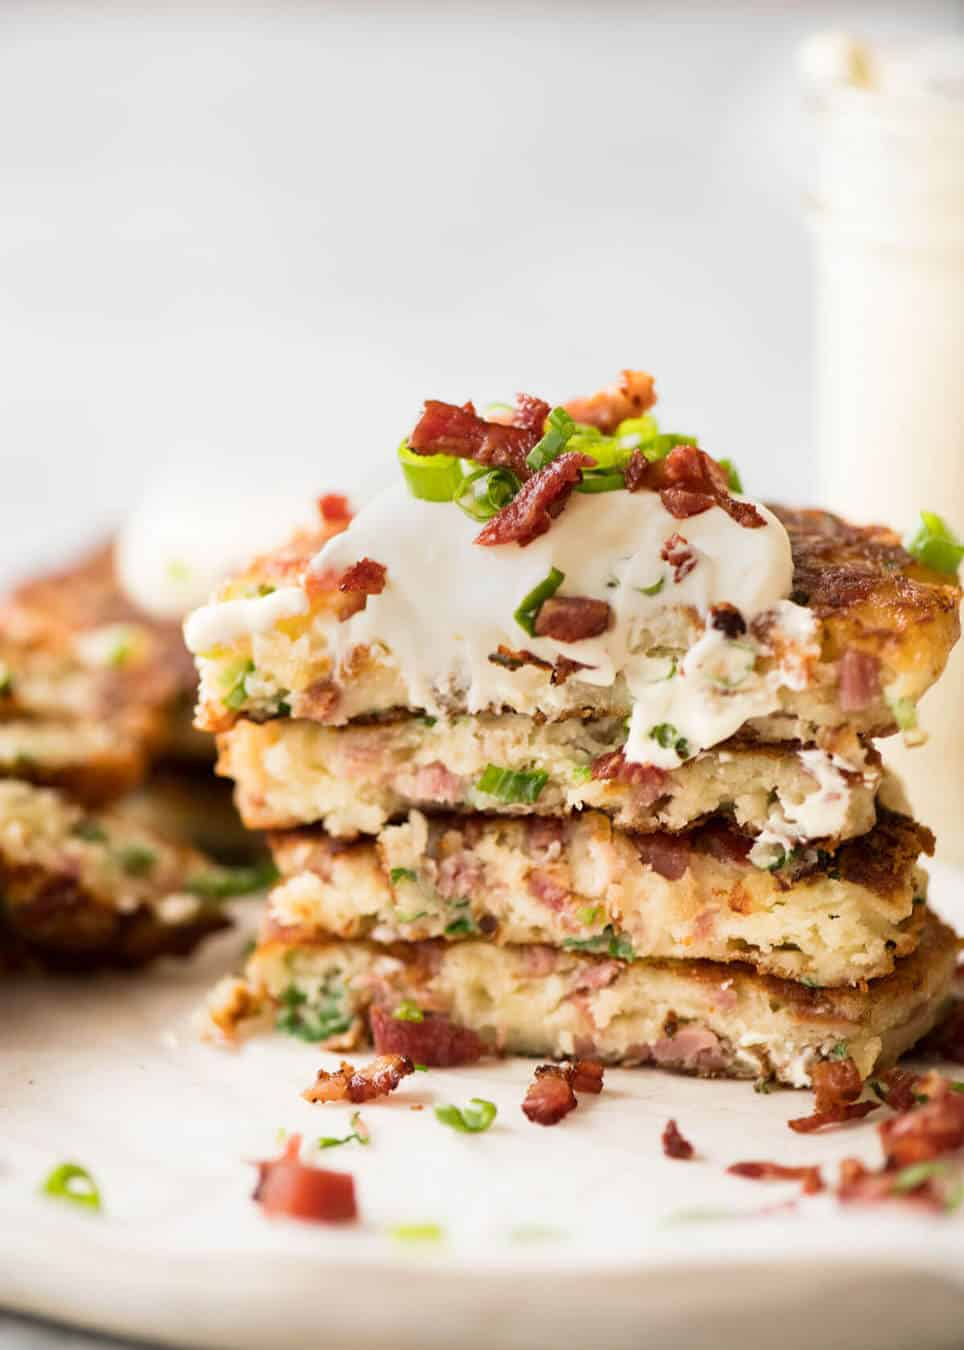 Cheese and Ham Pancakes - golden crispy cheesy outsides, fluffy insides with pops of ham (or bacon). These are epic! www.recipetineats.com